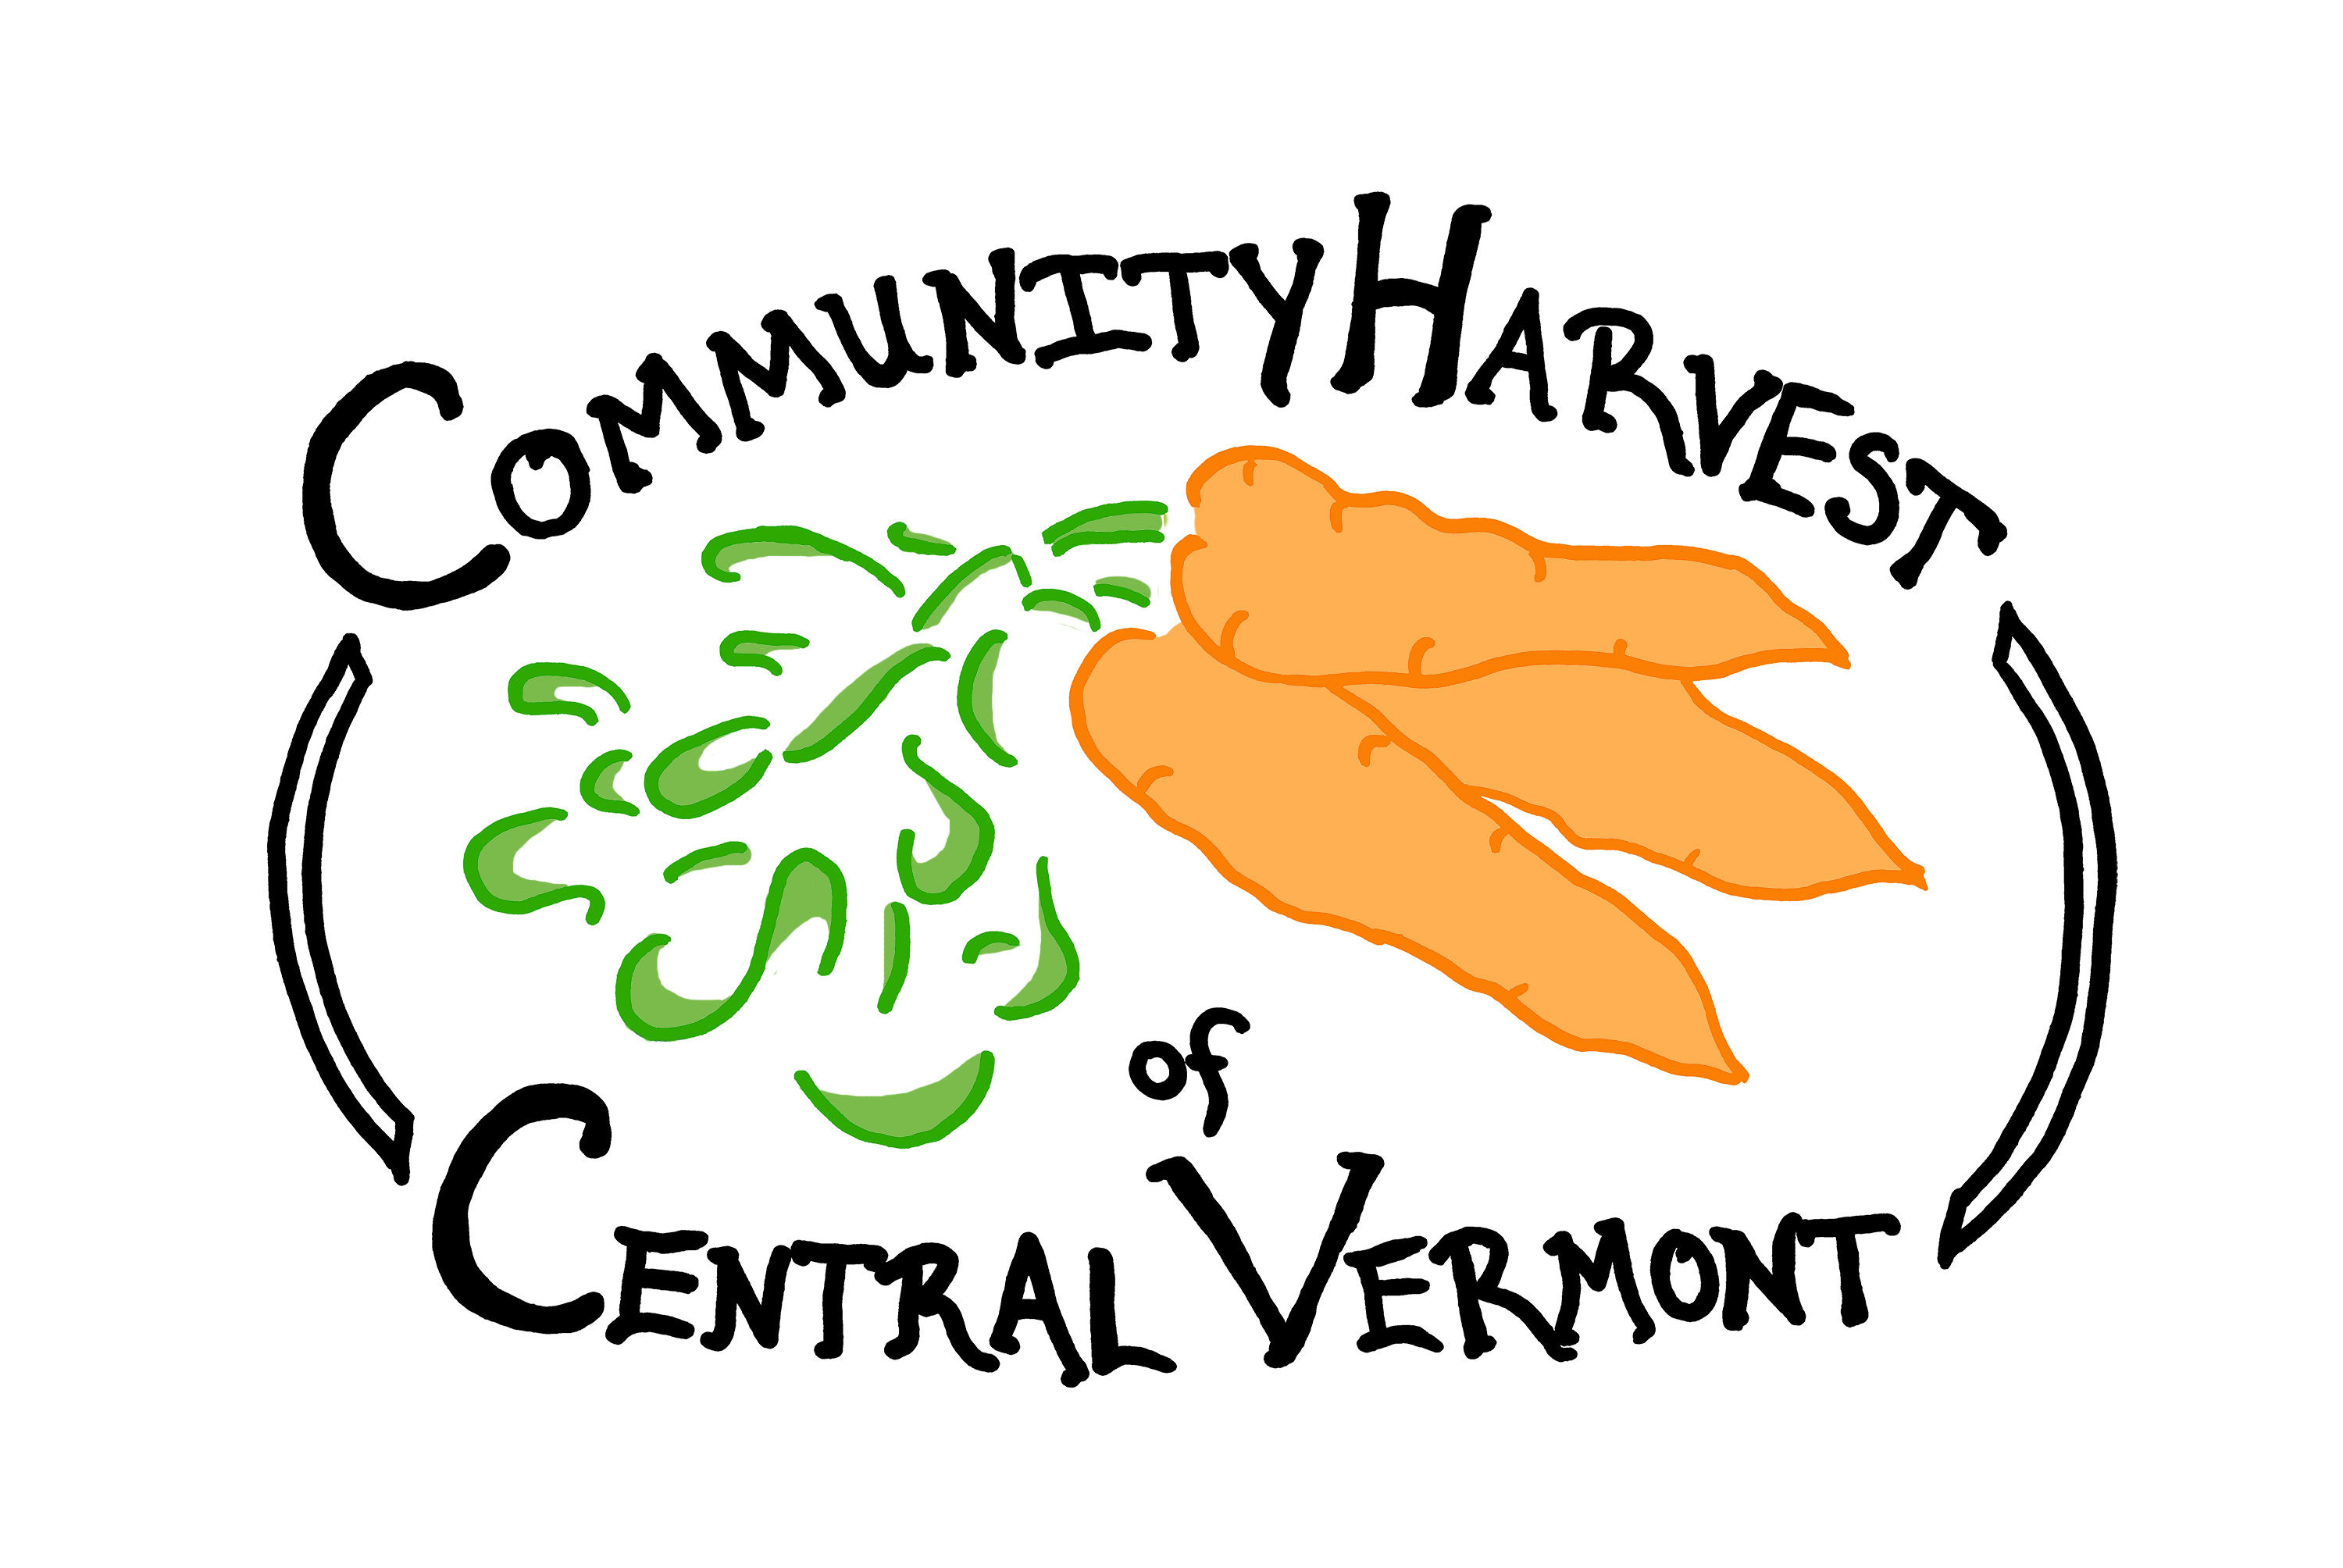 Yf8w3vuarrkqdxn1txgs+community_harvest_of_central_vermont